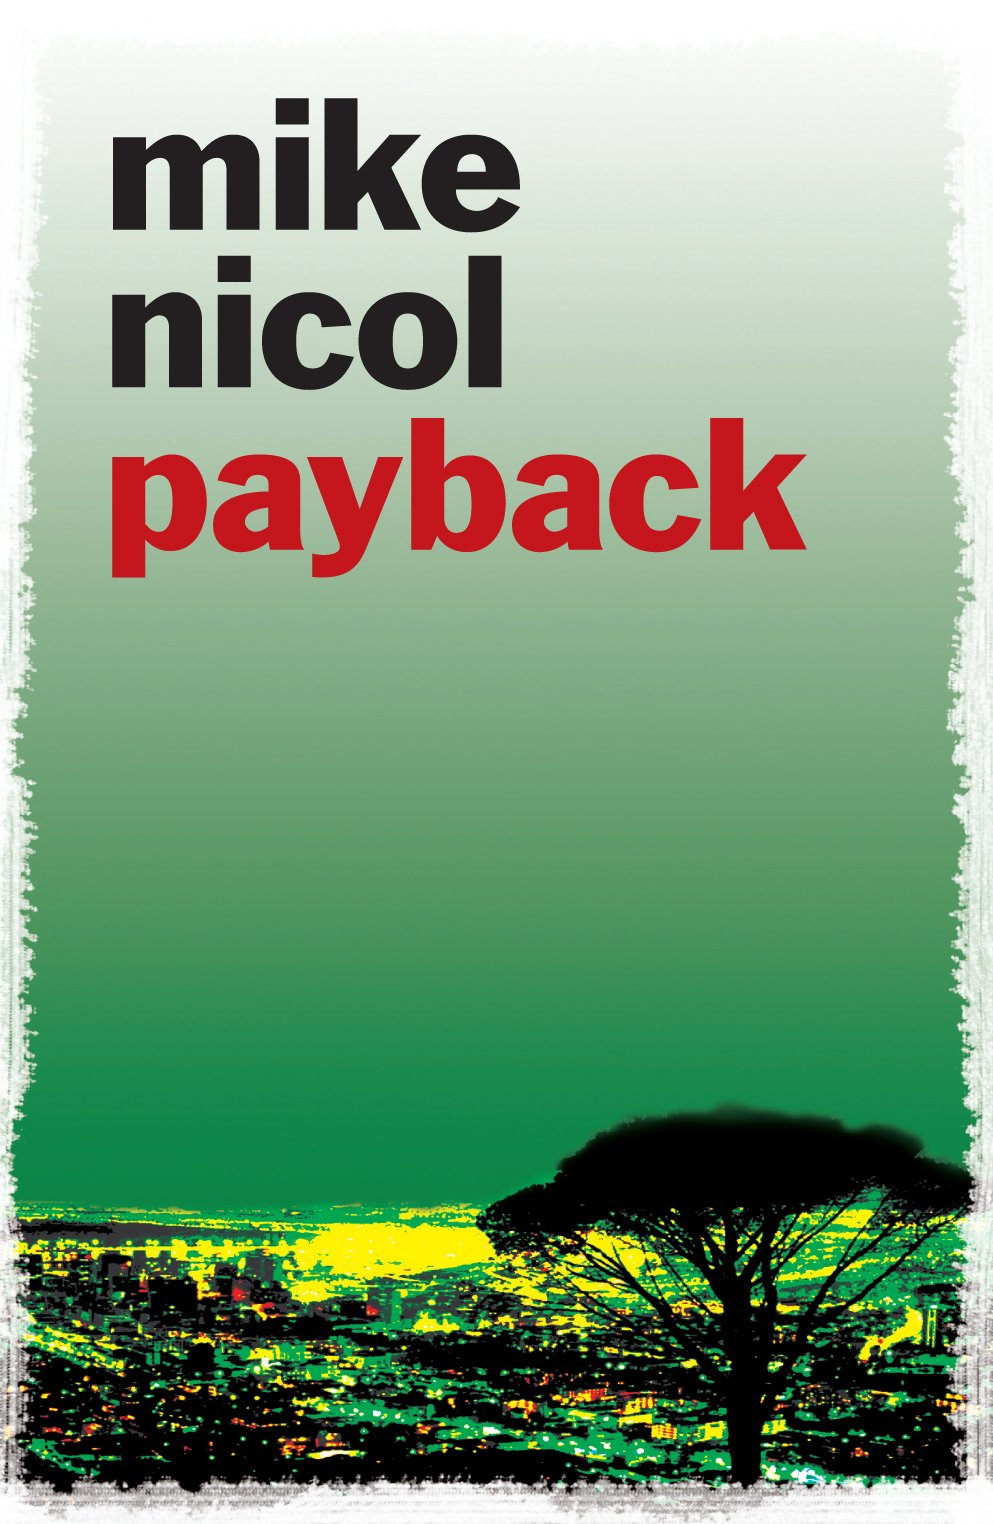 Payback: Nicol, Mike: 9781906964160: Amazon.com: Books